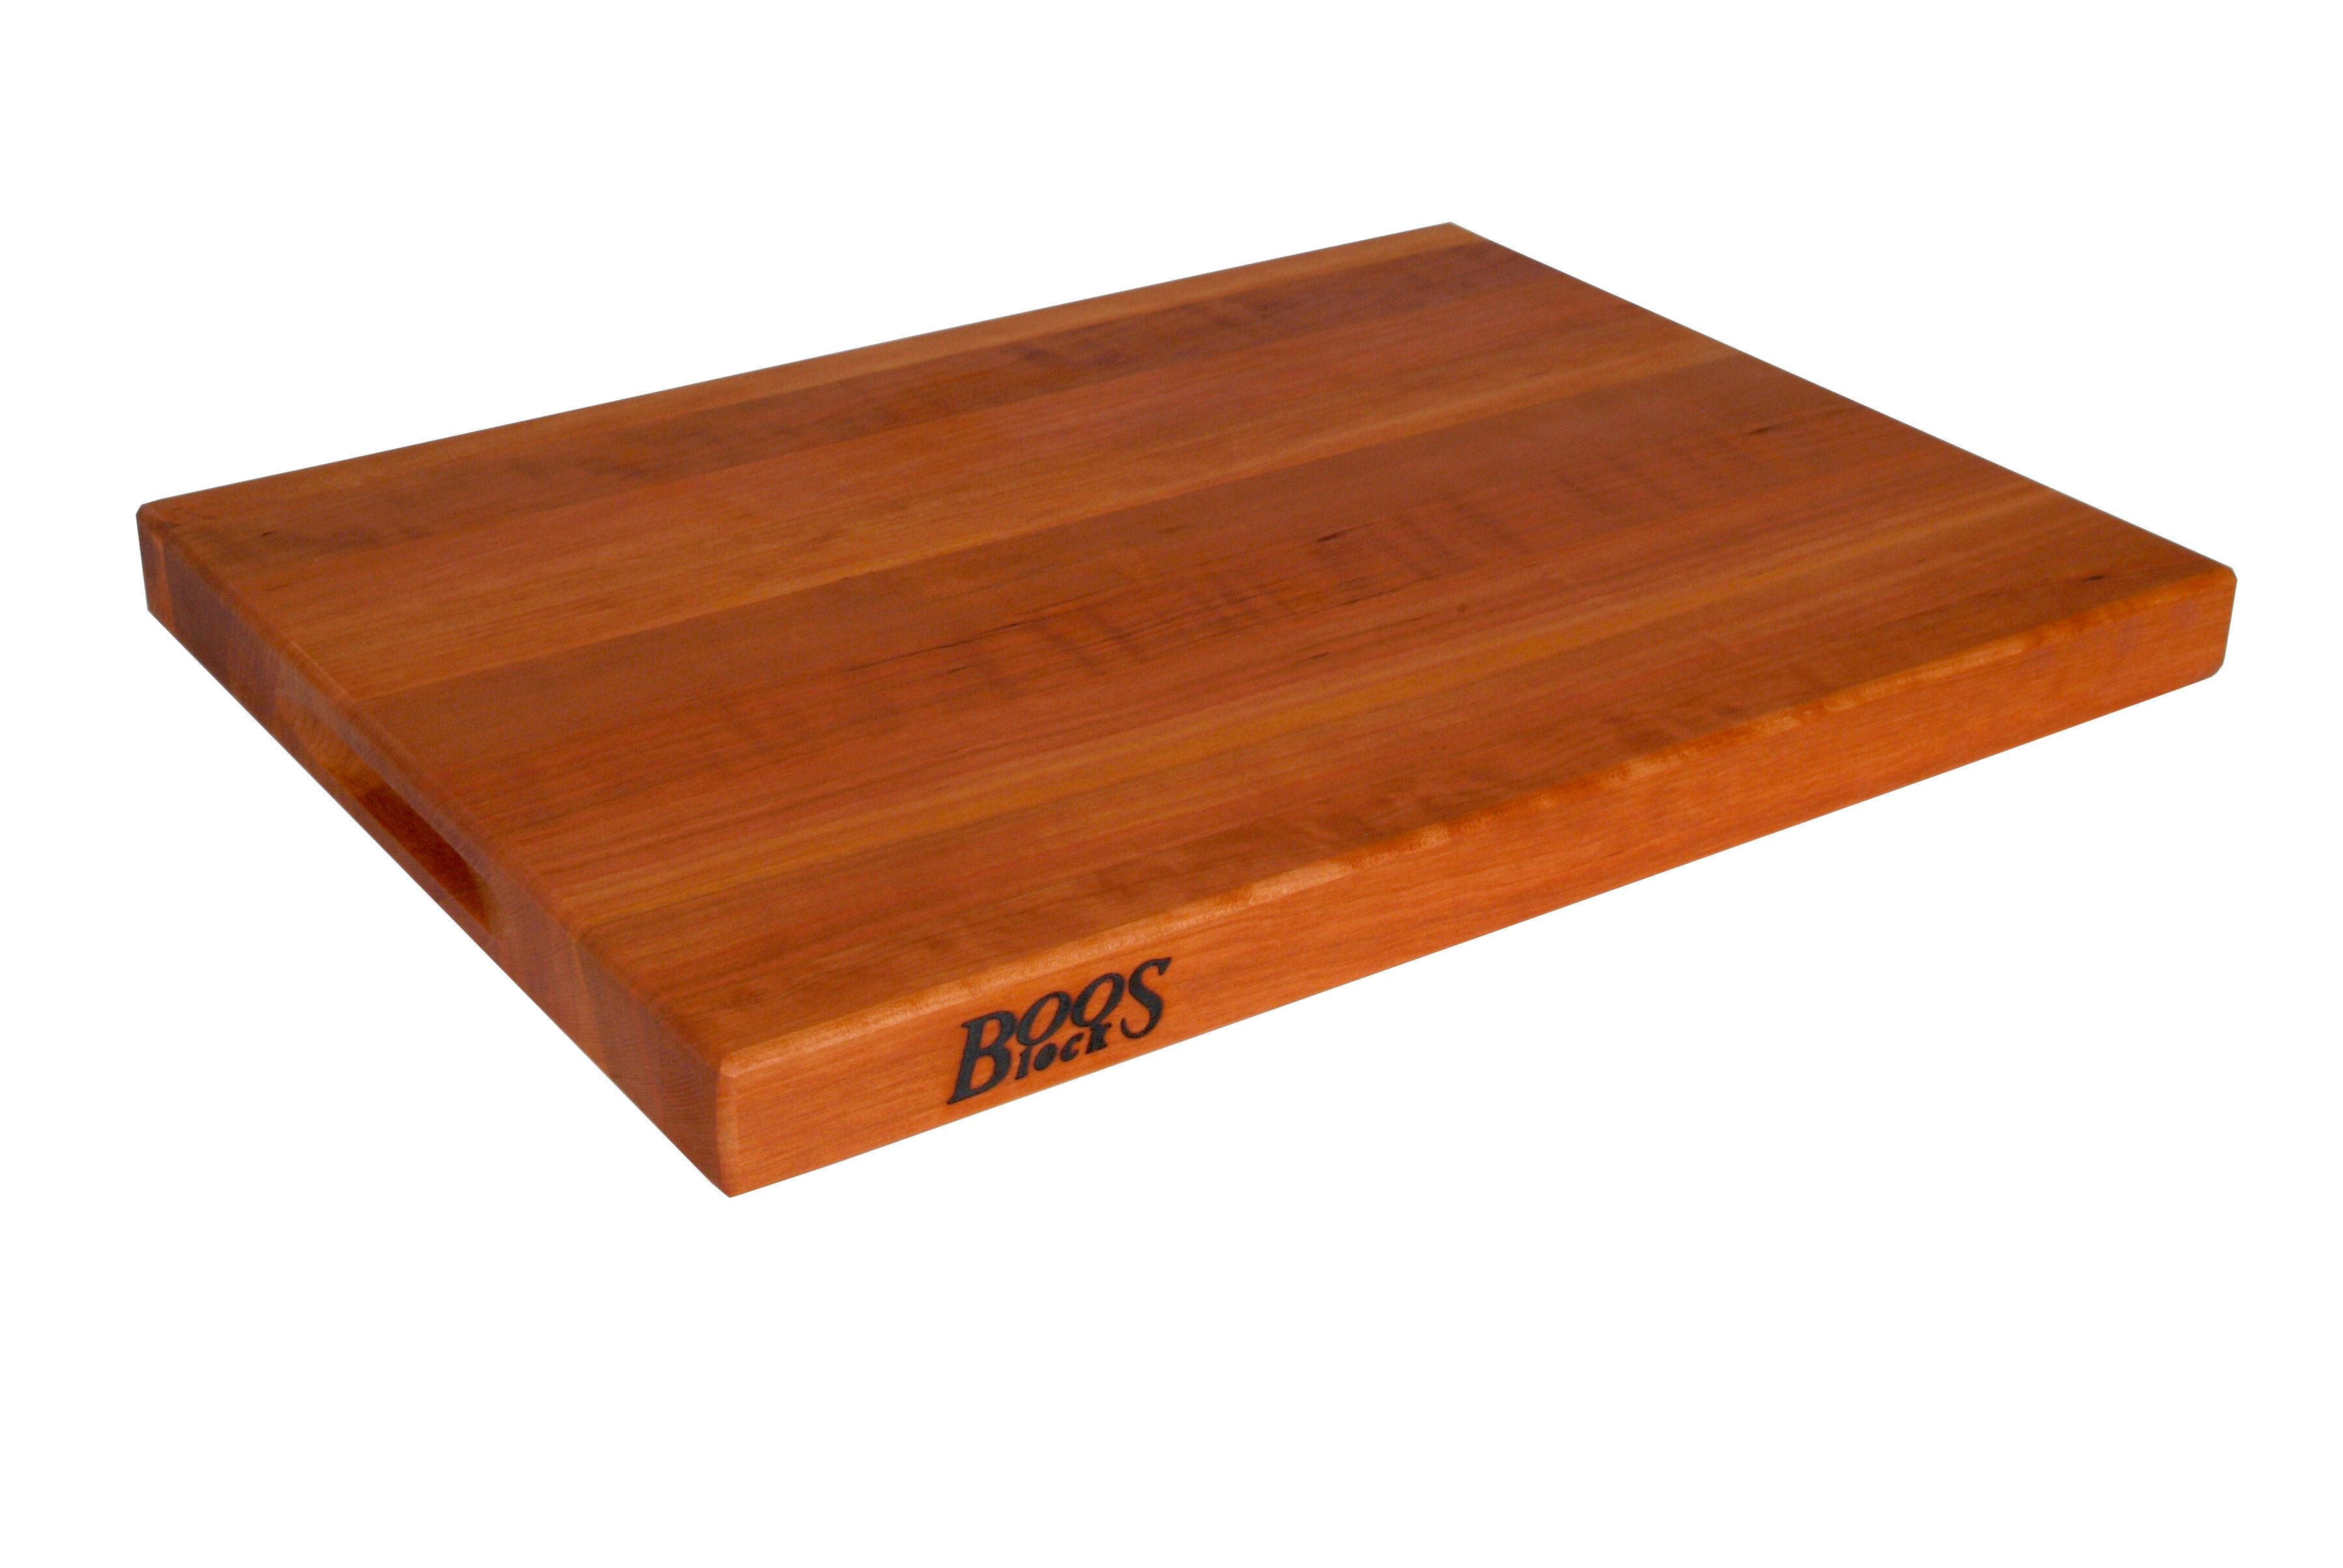 John Boos Boosblock Cherry Wood Cutting Board Reviews Wayfair